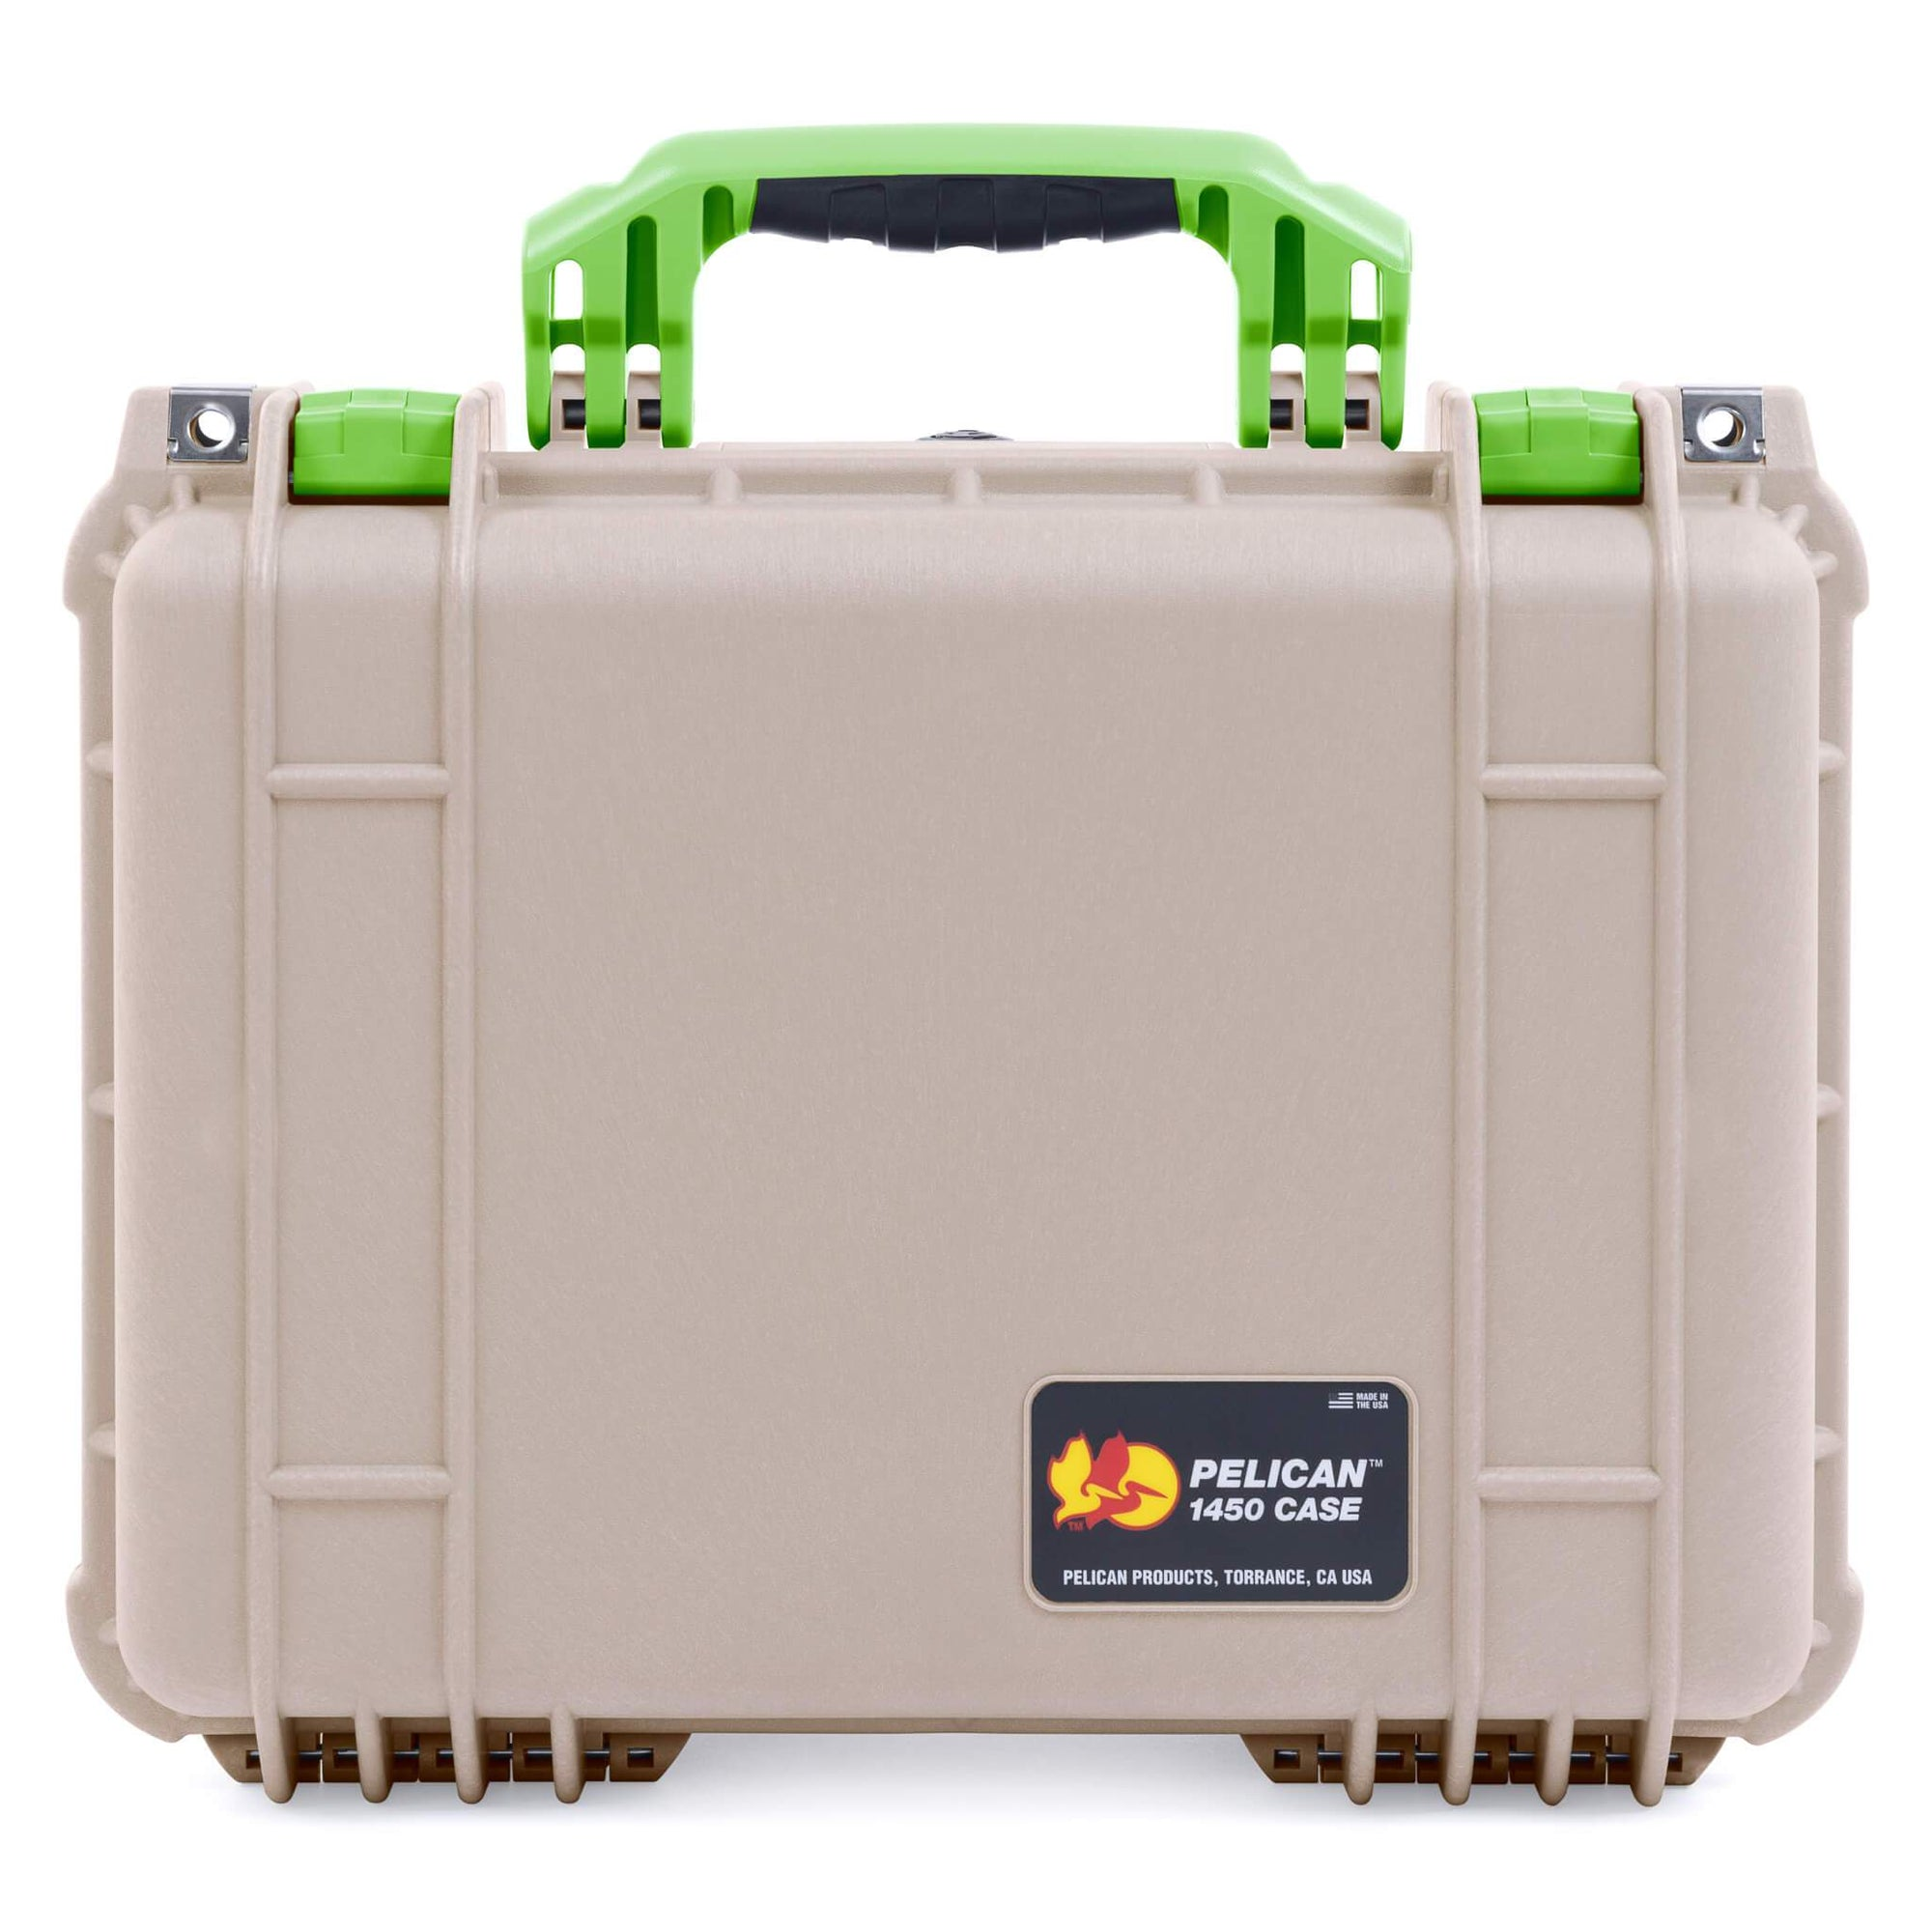 Pelican 1450 Case, Desert Tan with Lime Green Handle & Latches